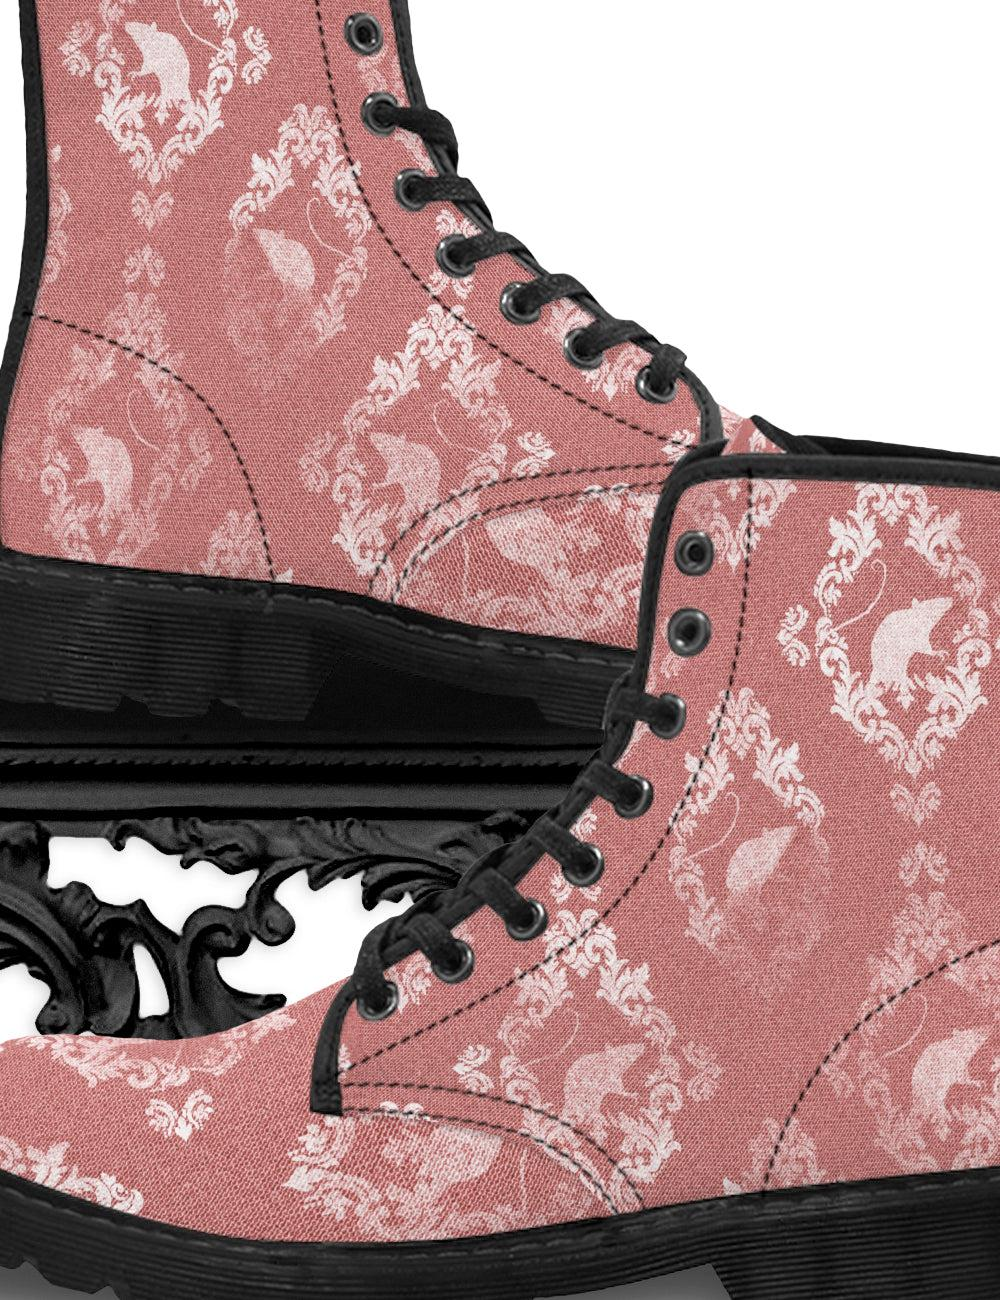 Victorian Rat Canvas Combat Boots in 'Dying Rose' | Gentleman's - The Asylum Emporium